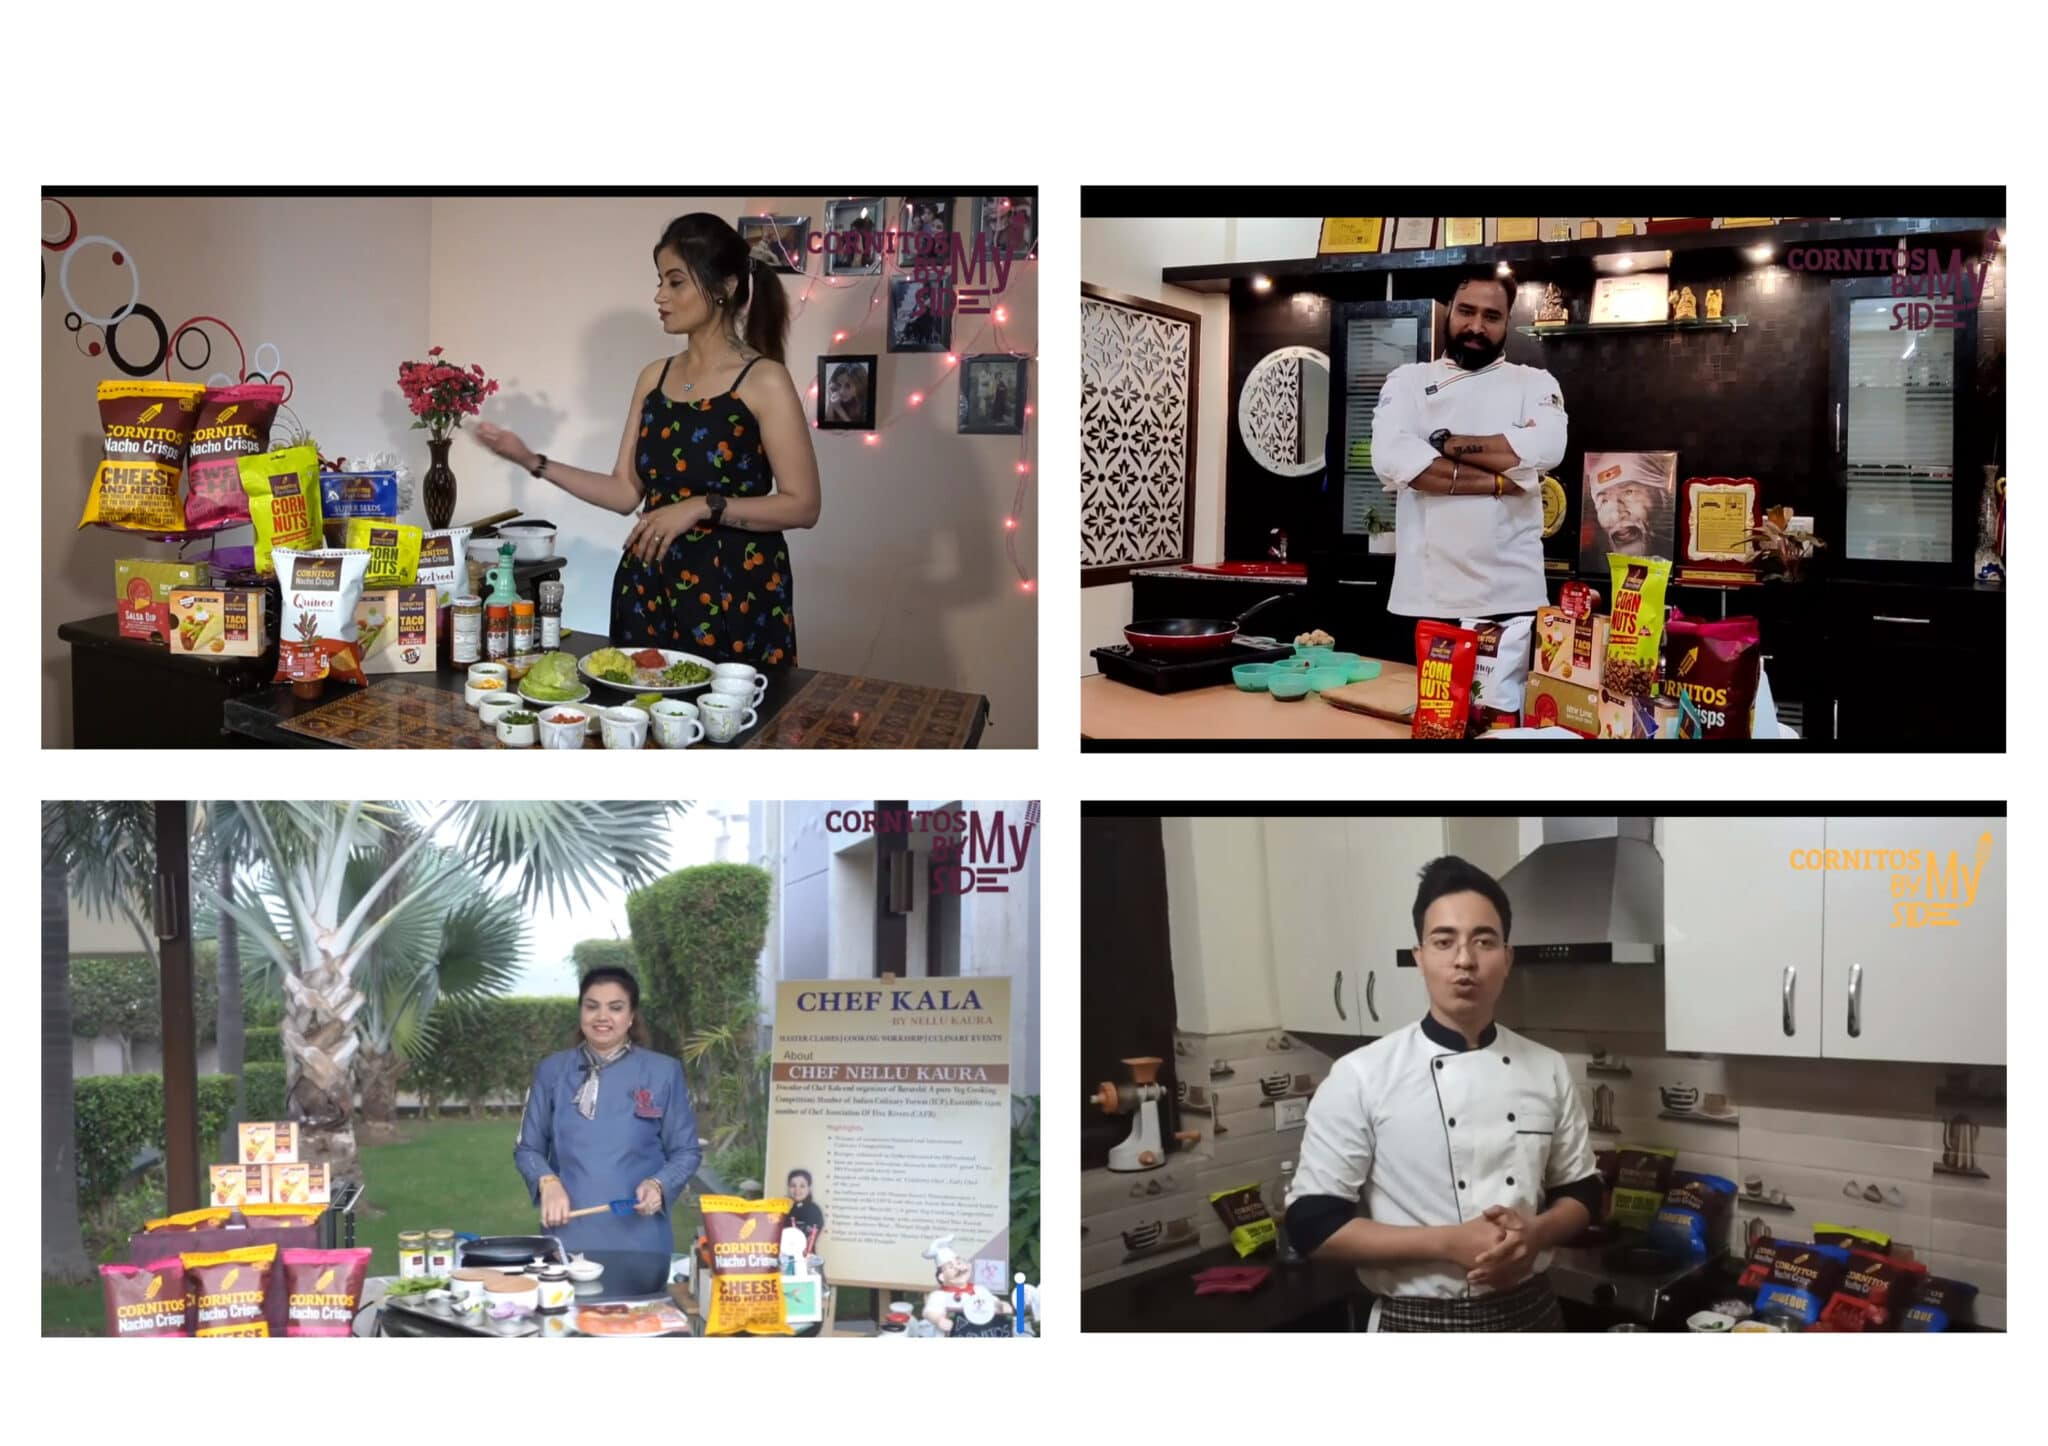 Cornitos-Collage-Chefs-scaled.jpg